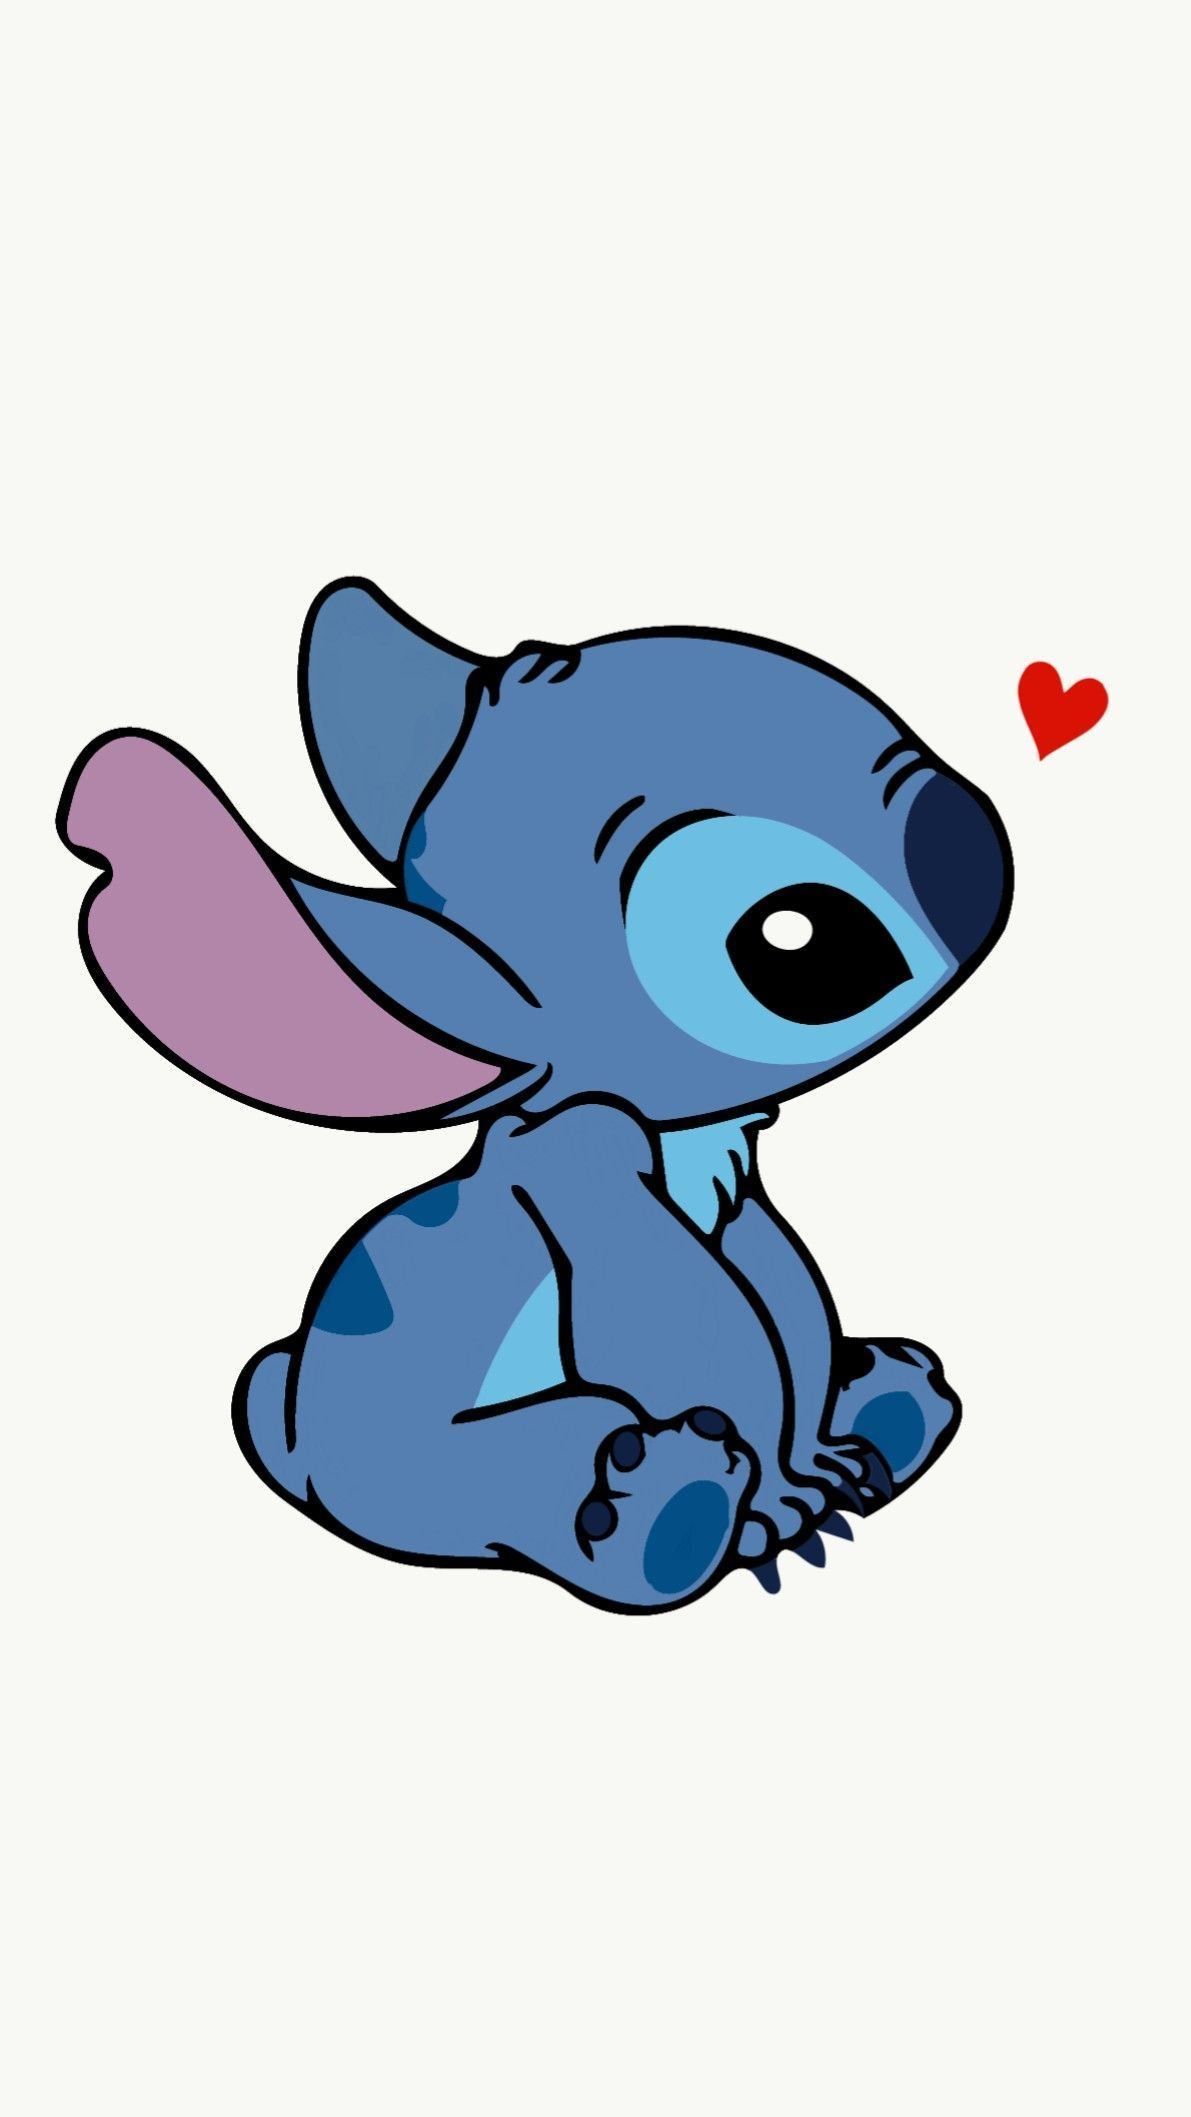 Cute Stitch Wallpapers - Wallpaper Cave